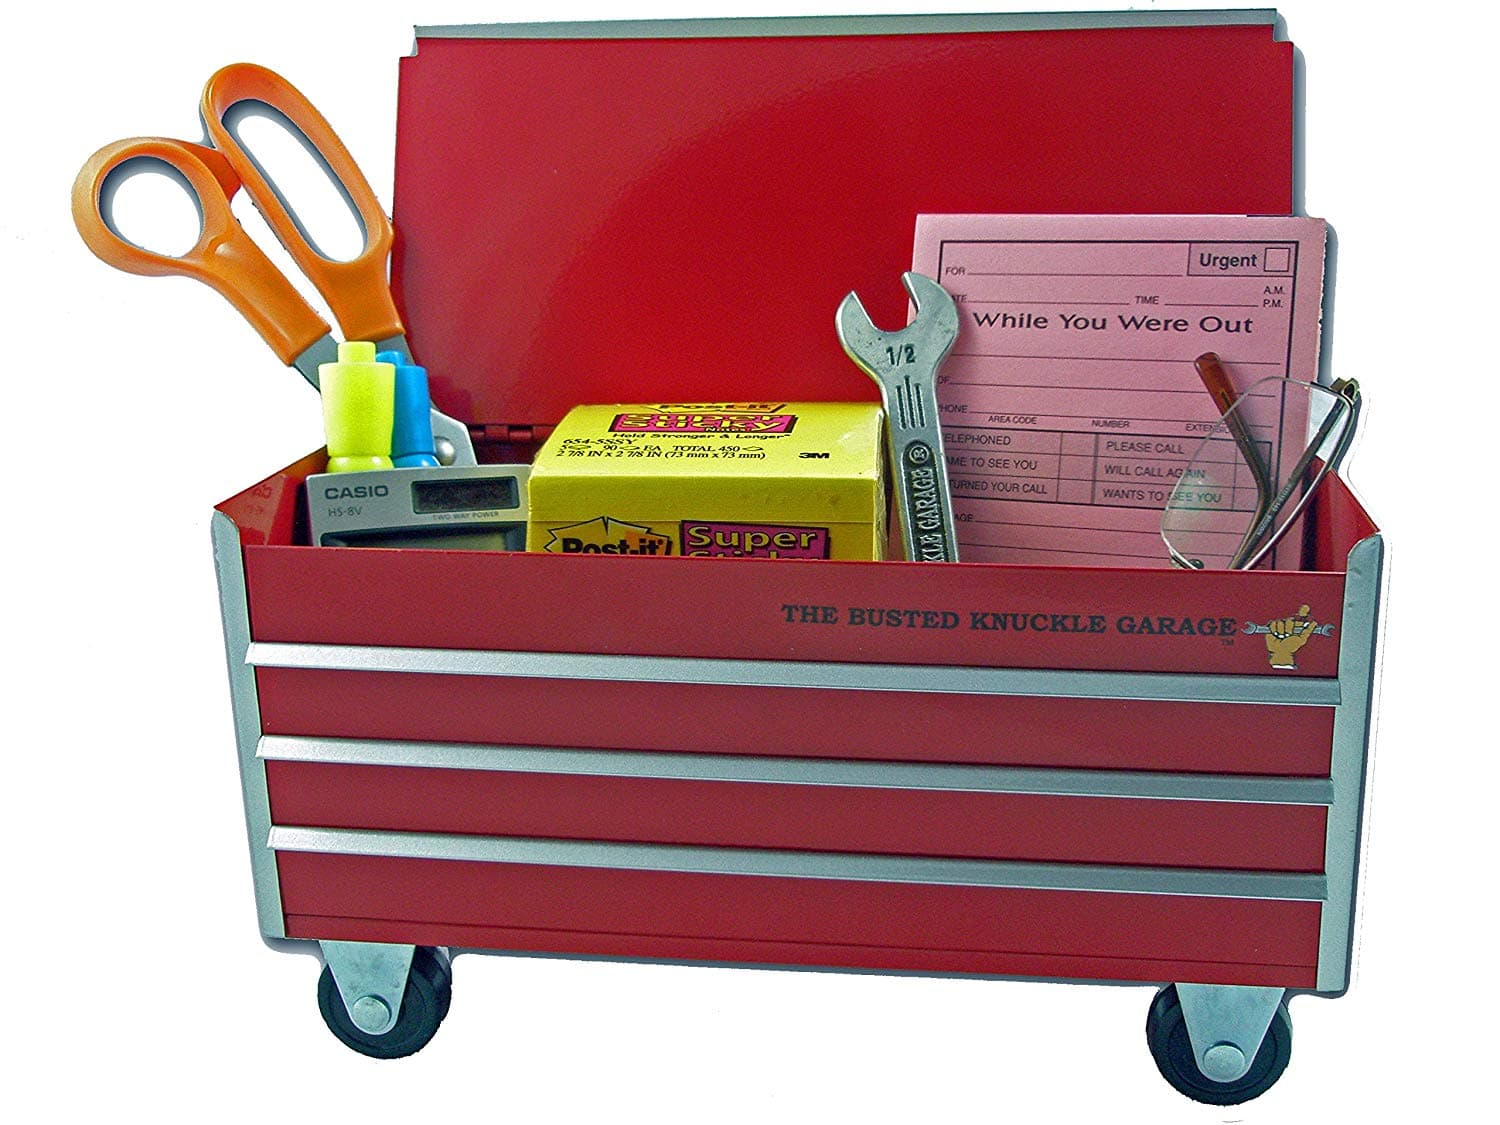 The Busted Knuckle Garage Toolbox